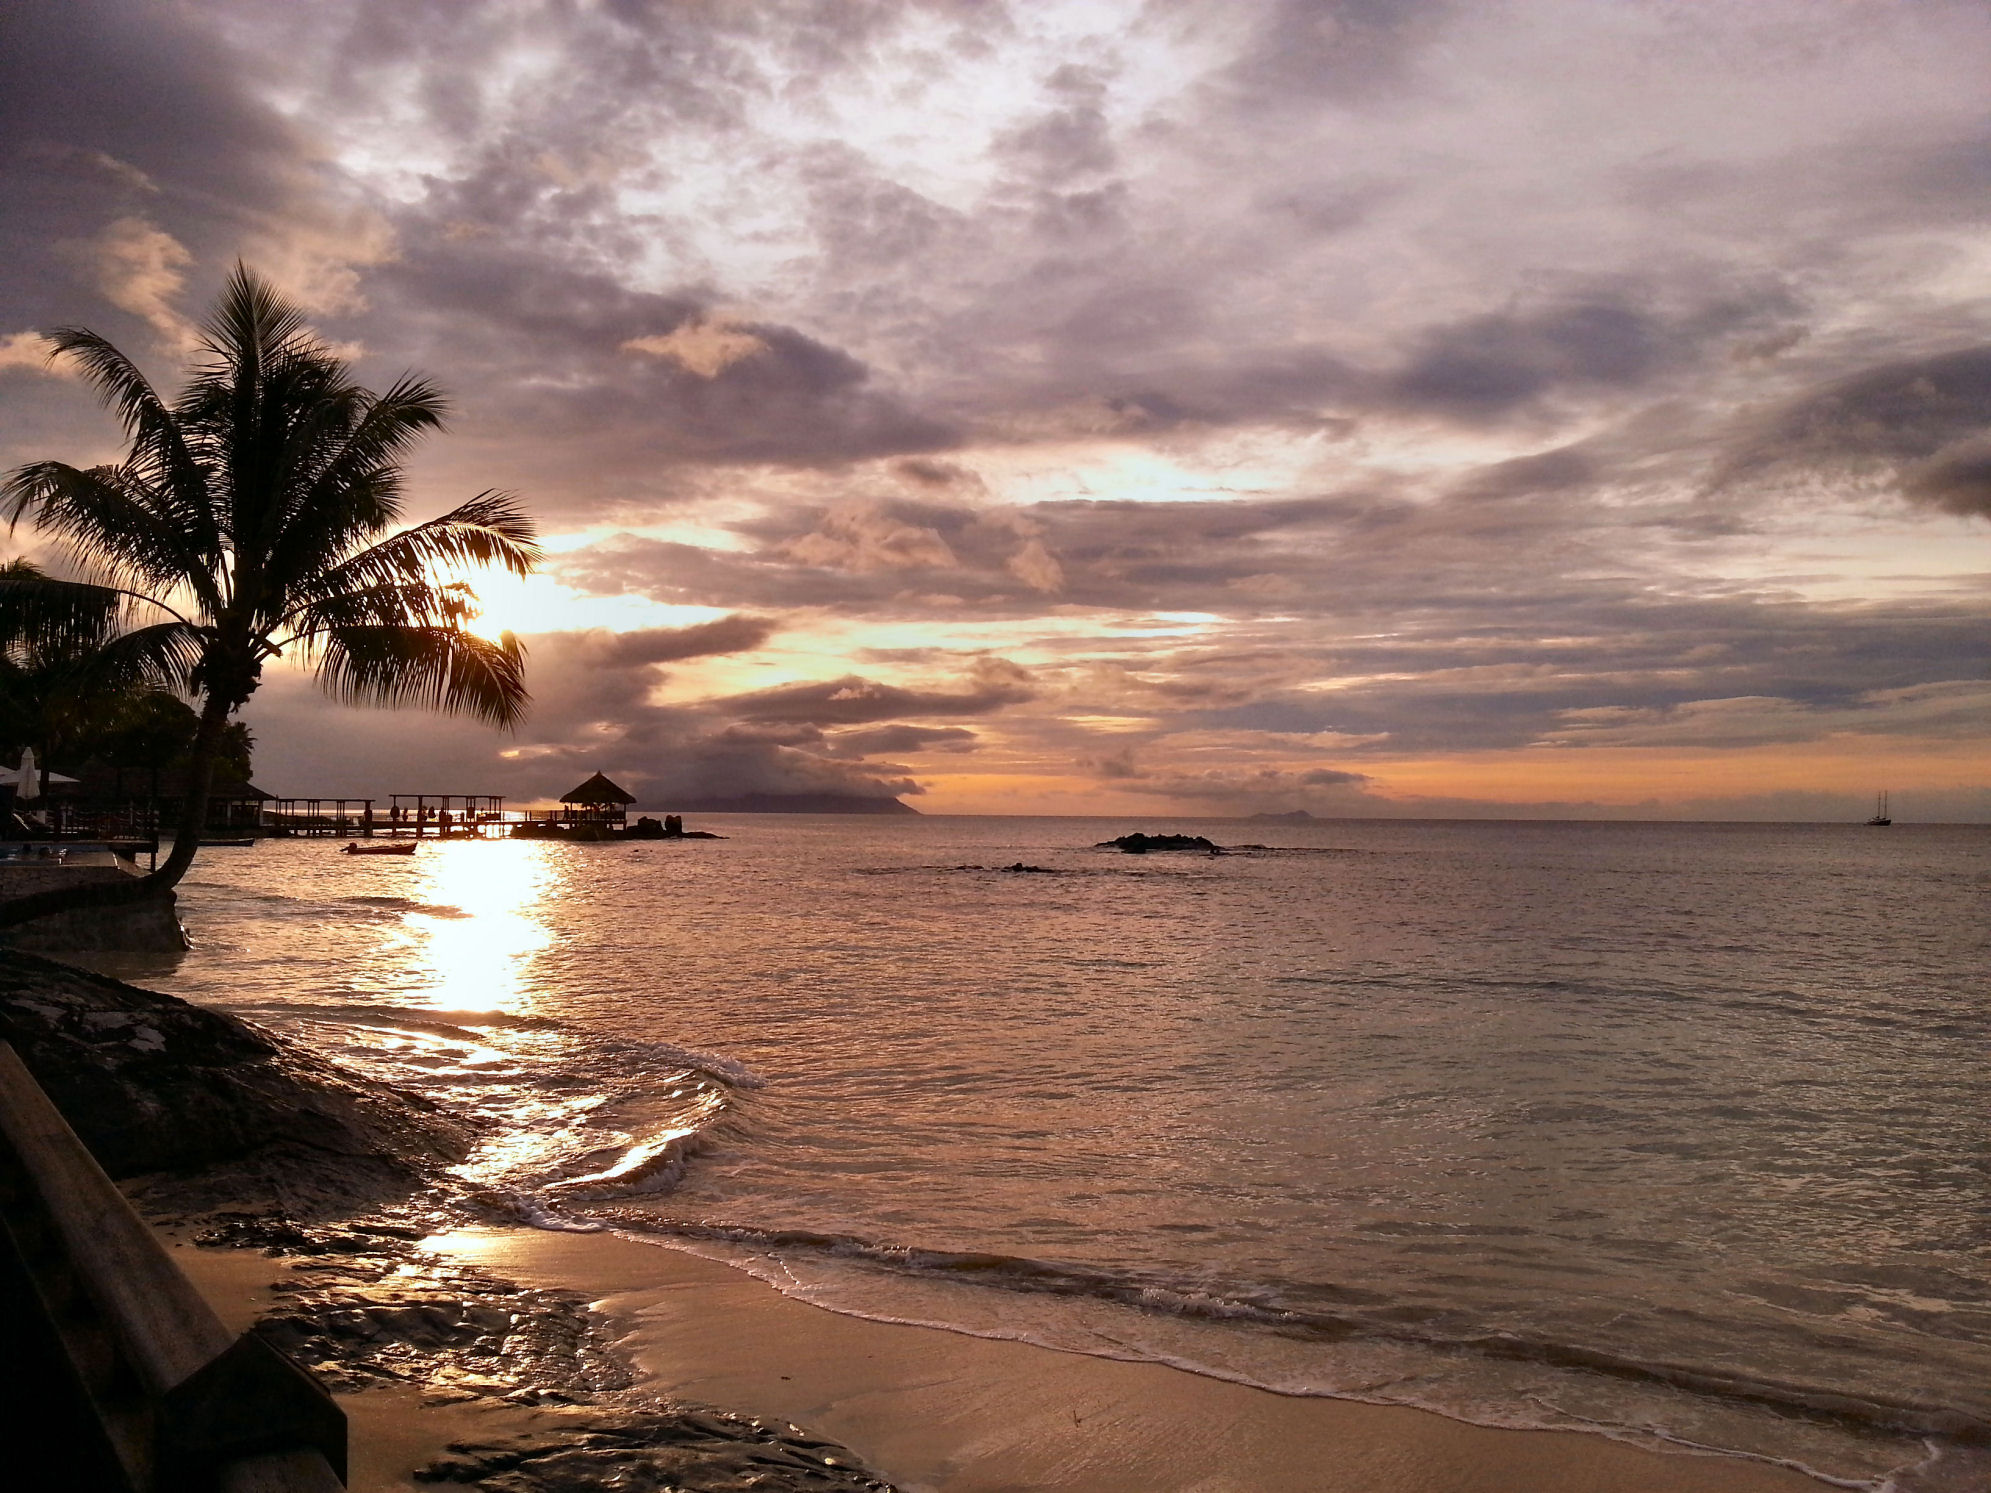 Sunset view from Le Meridien FIsherman's Cove in Mahe Island, Seychelles